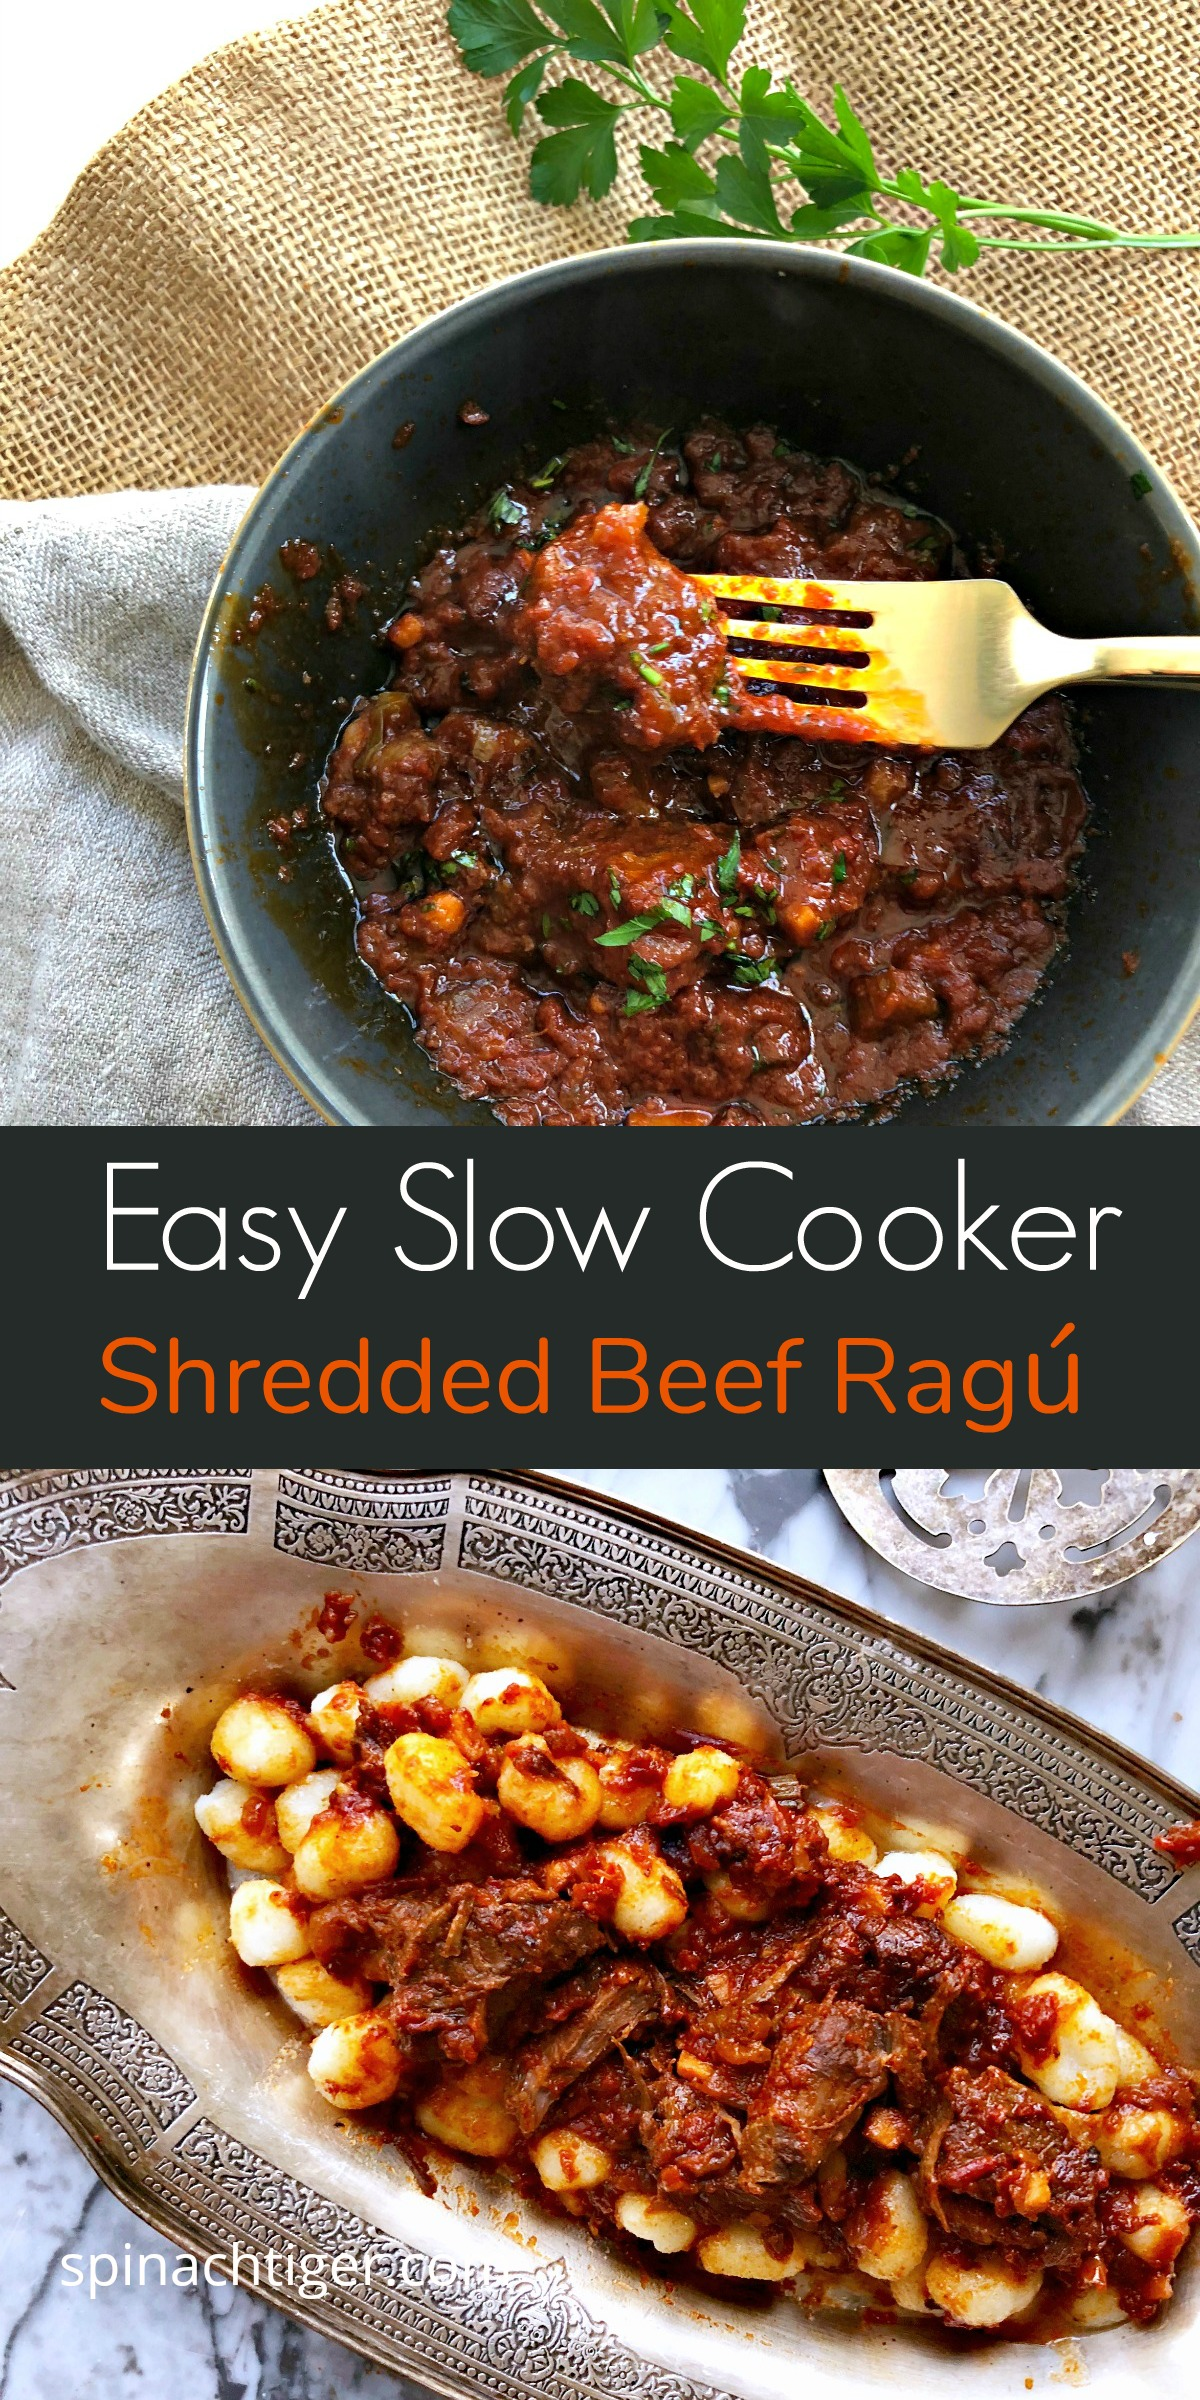 Easy Dinner. Slow Cooker Shredded Beef Ragú from Spinach Tiger